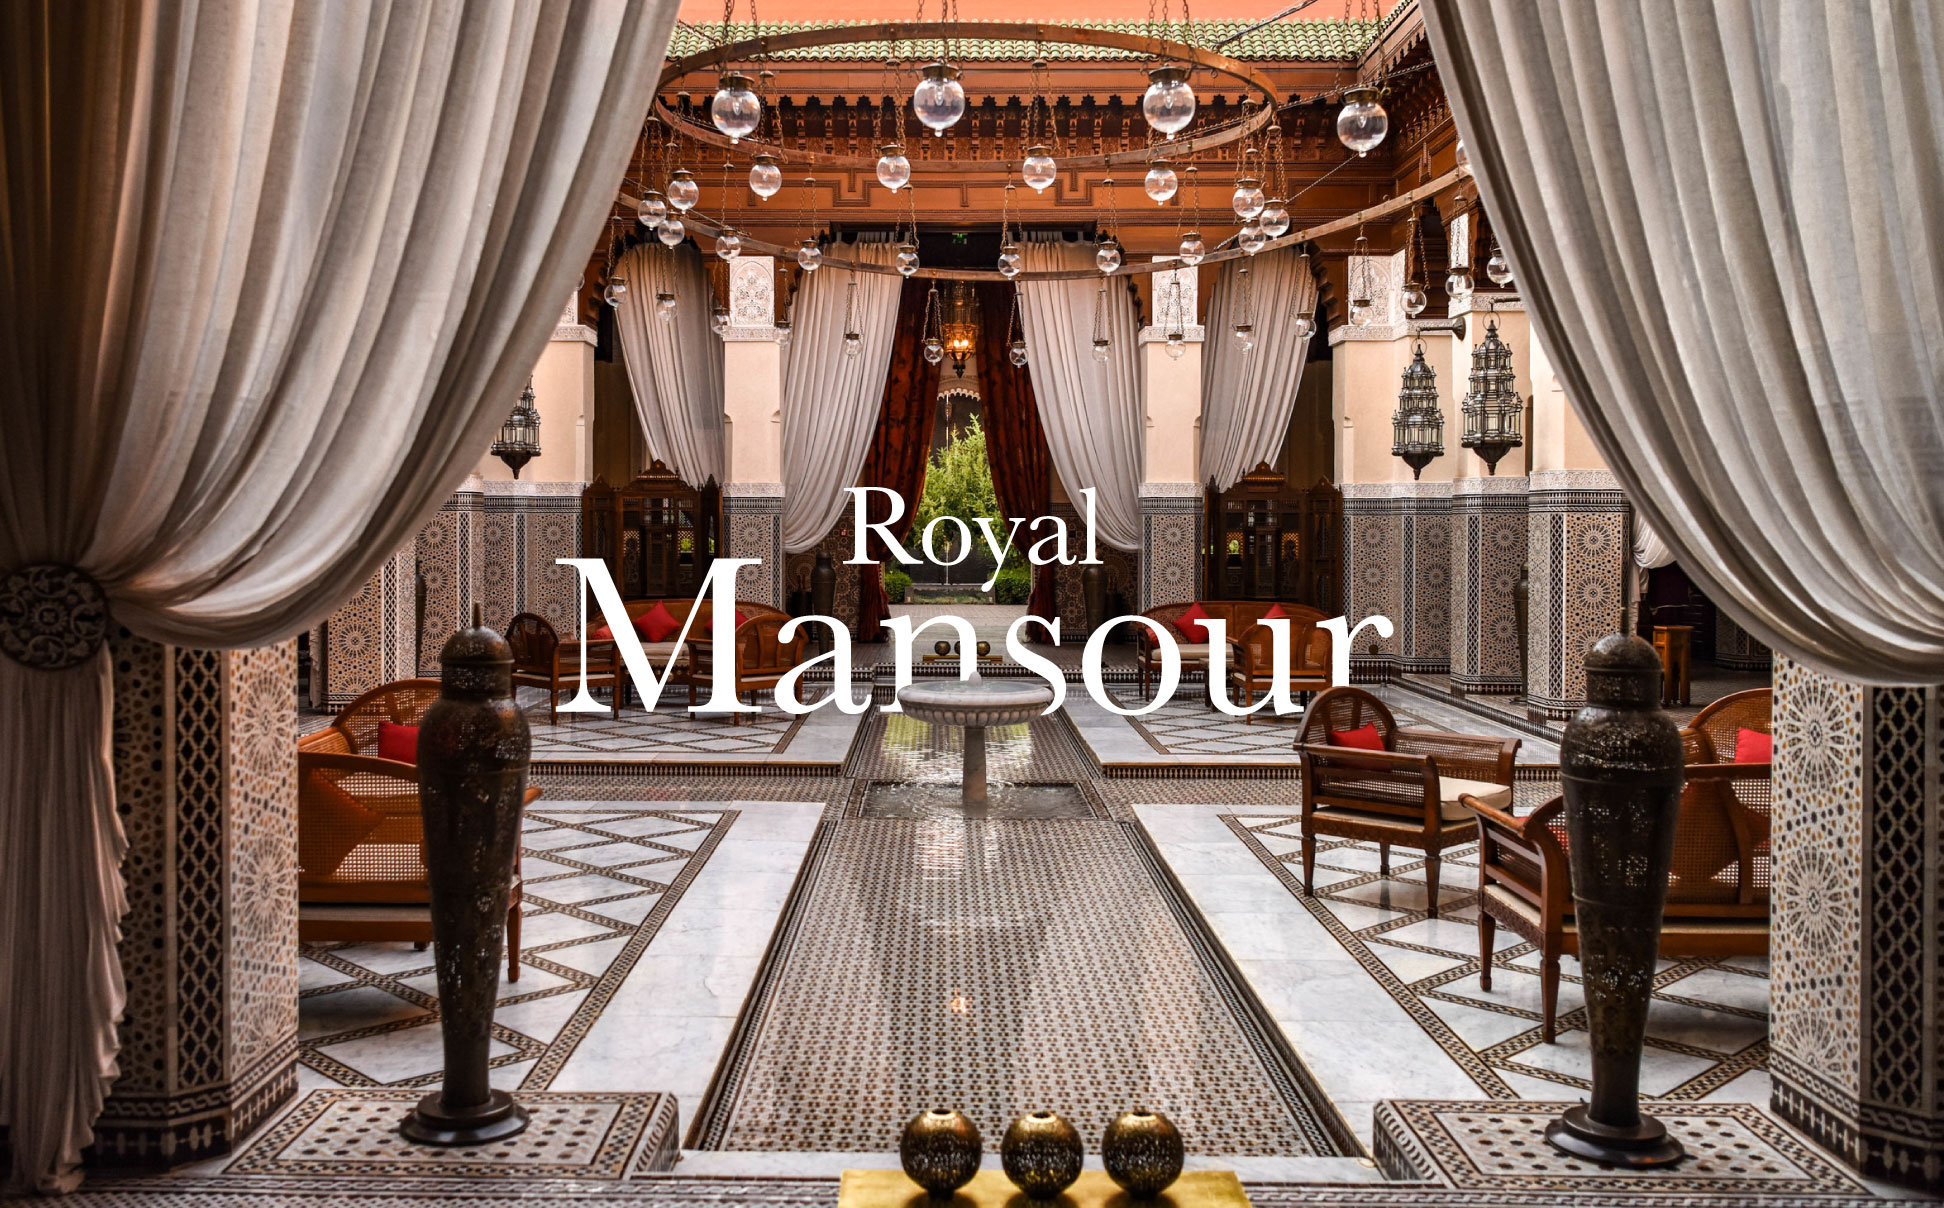 Weston_Table_Royal_Mansour_Feature.jpg